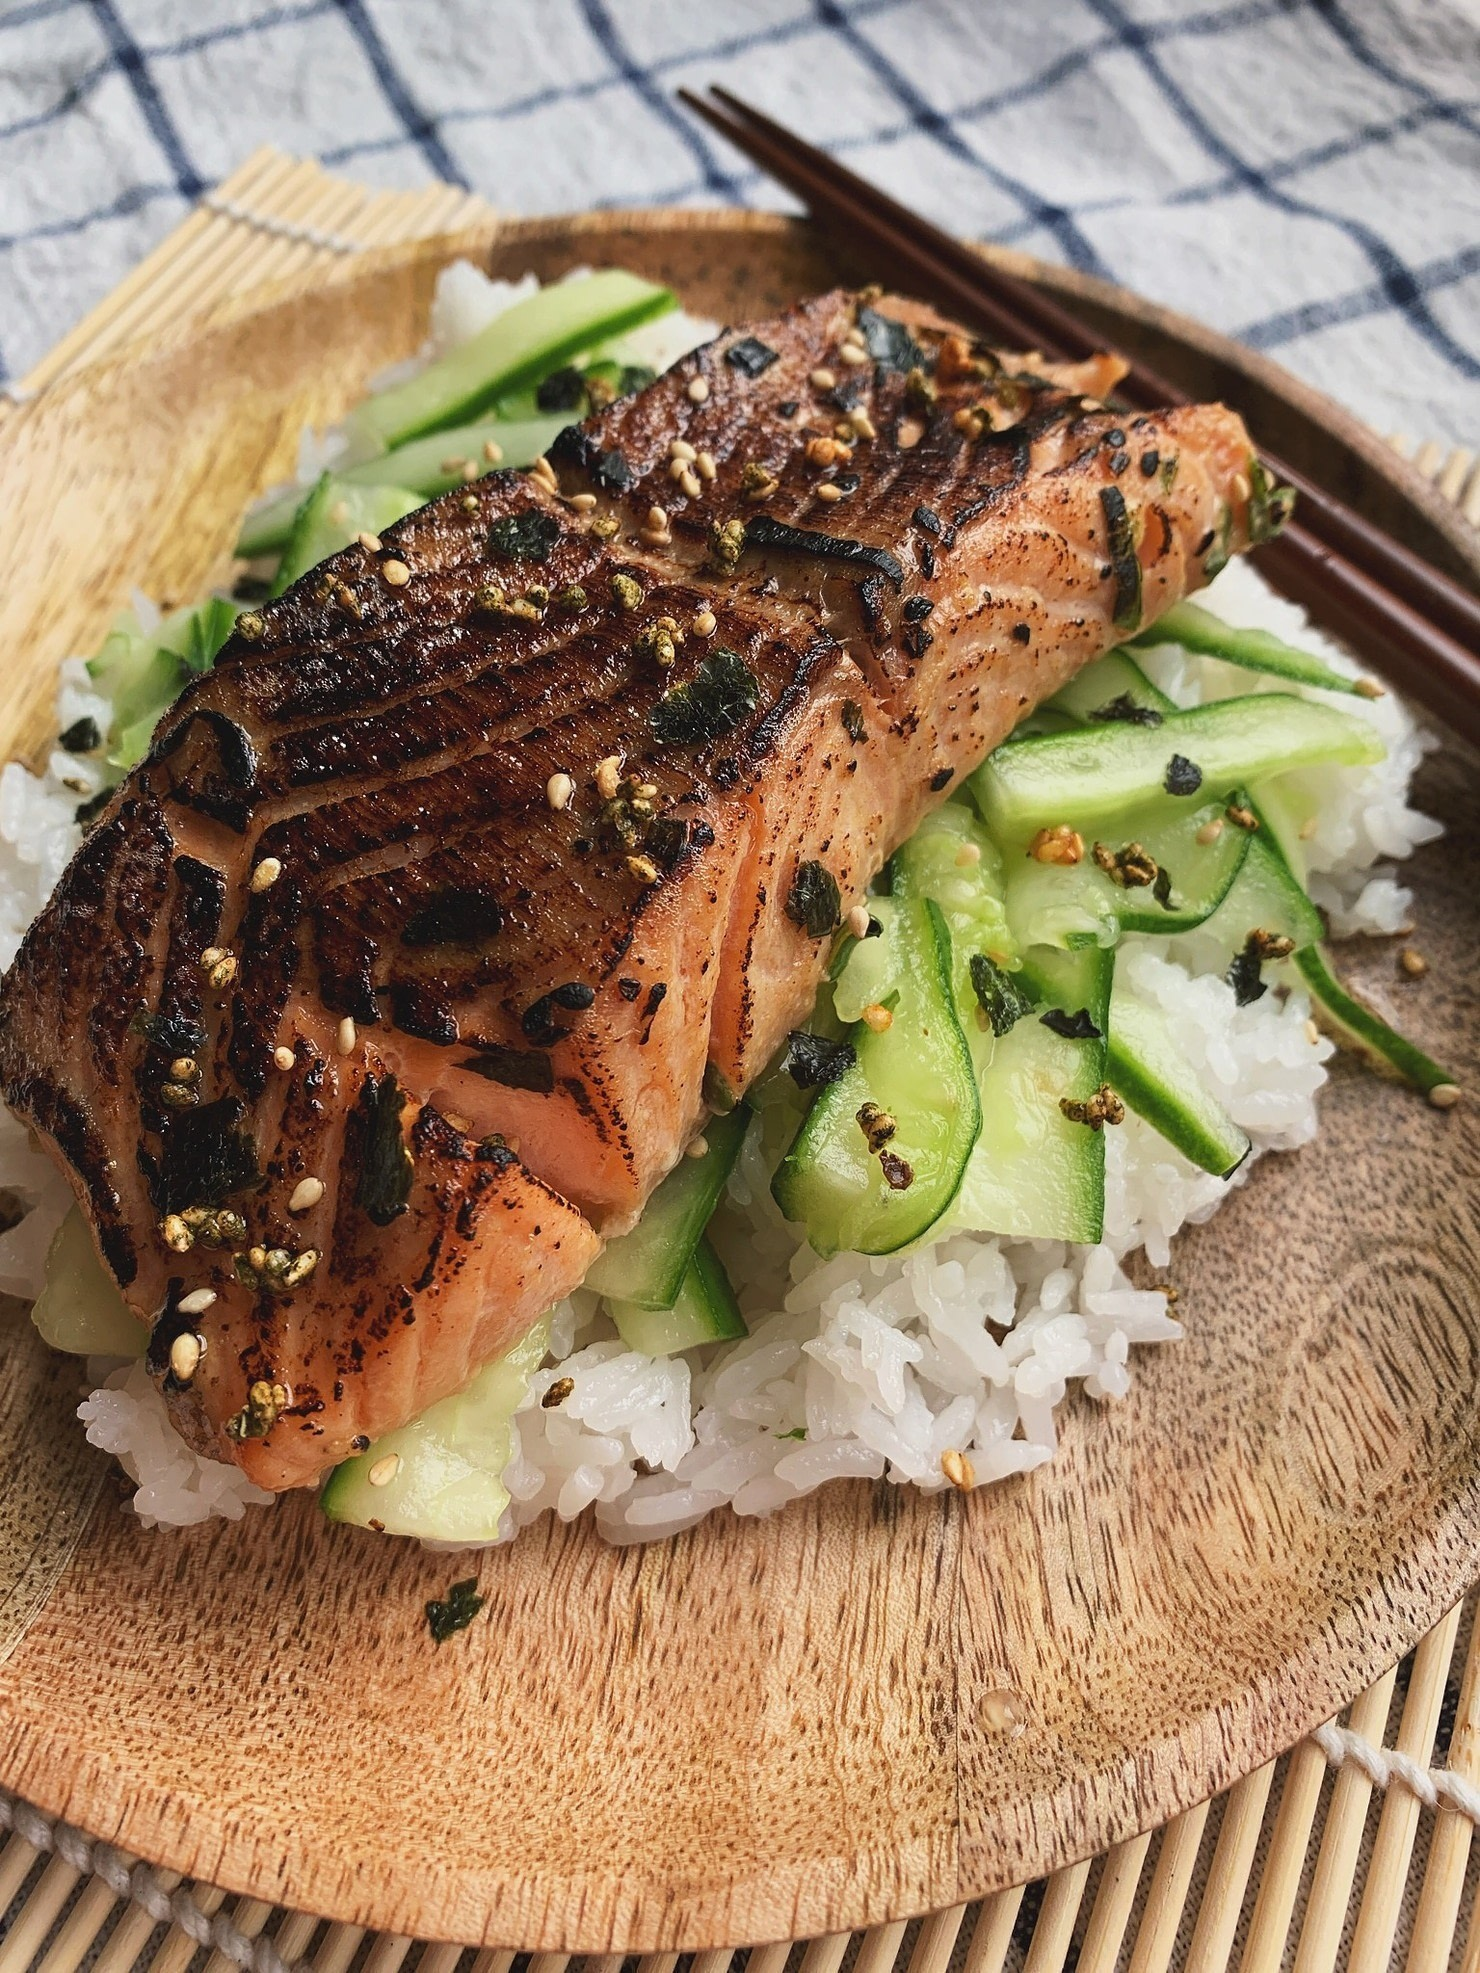 MISO SALMON WITH CUCUMBER SALAD HOW TO COOK A SALMON DISH